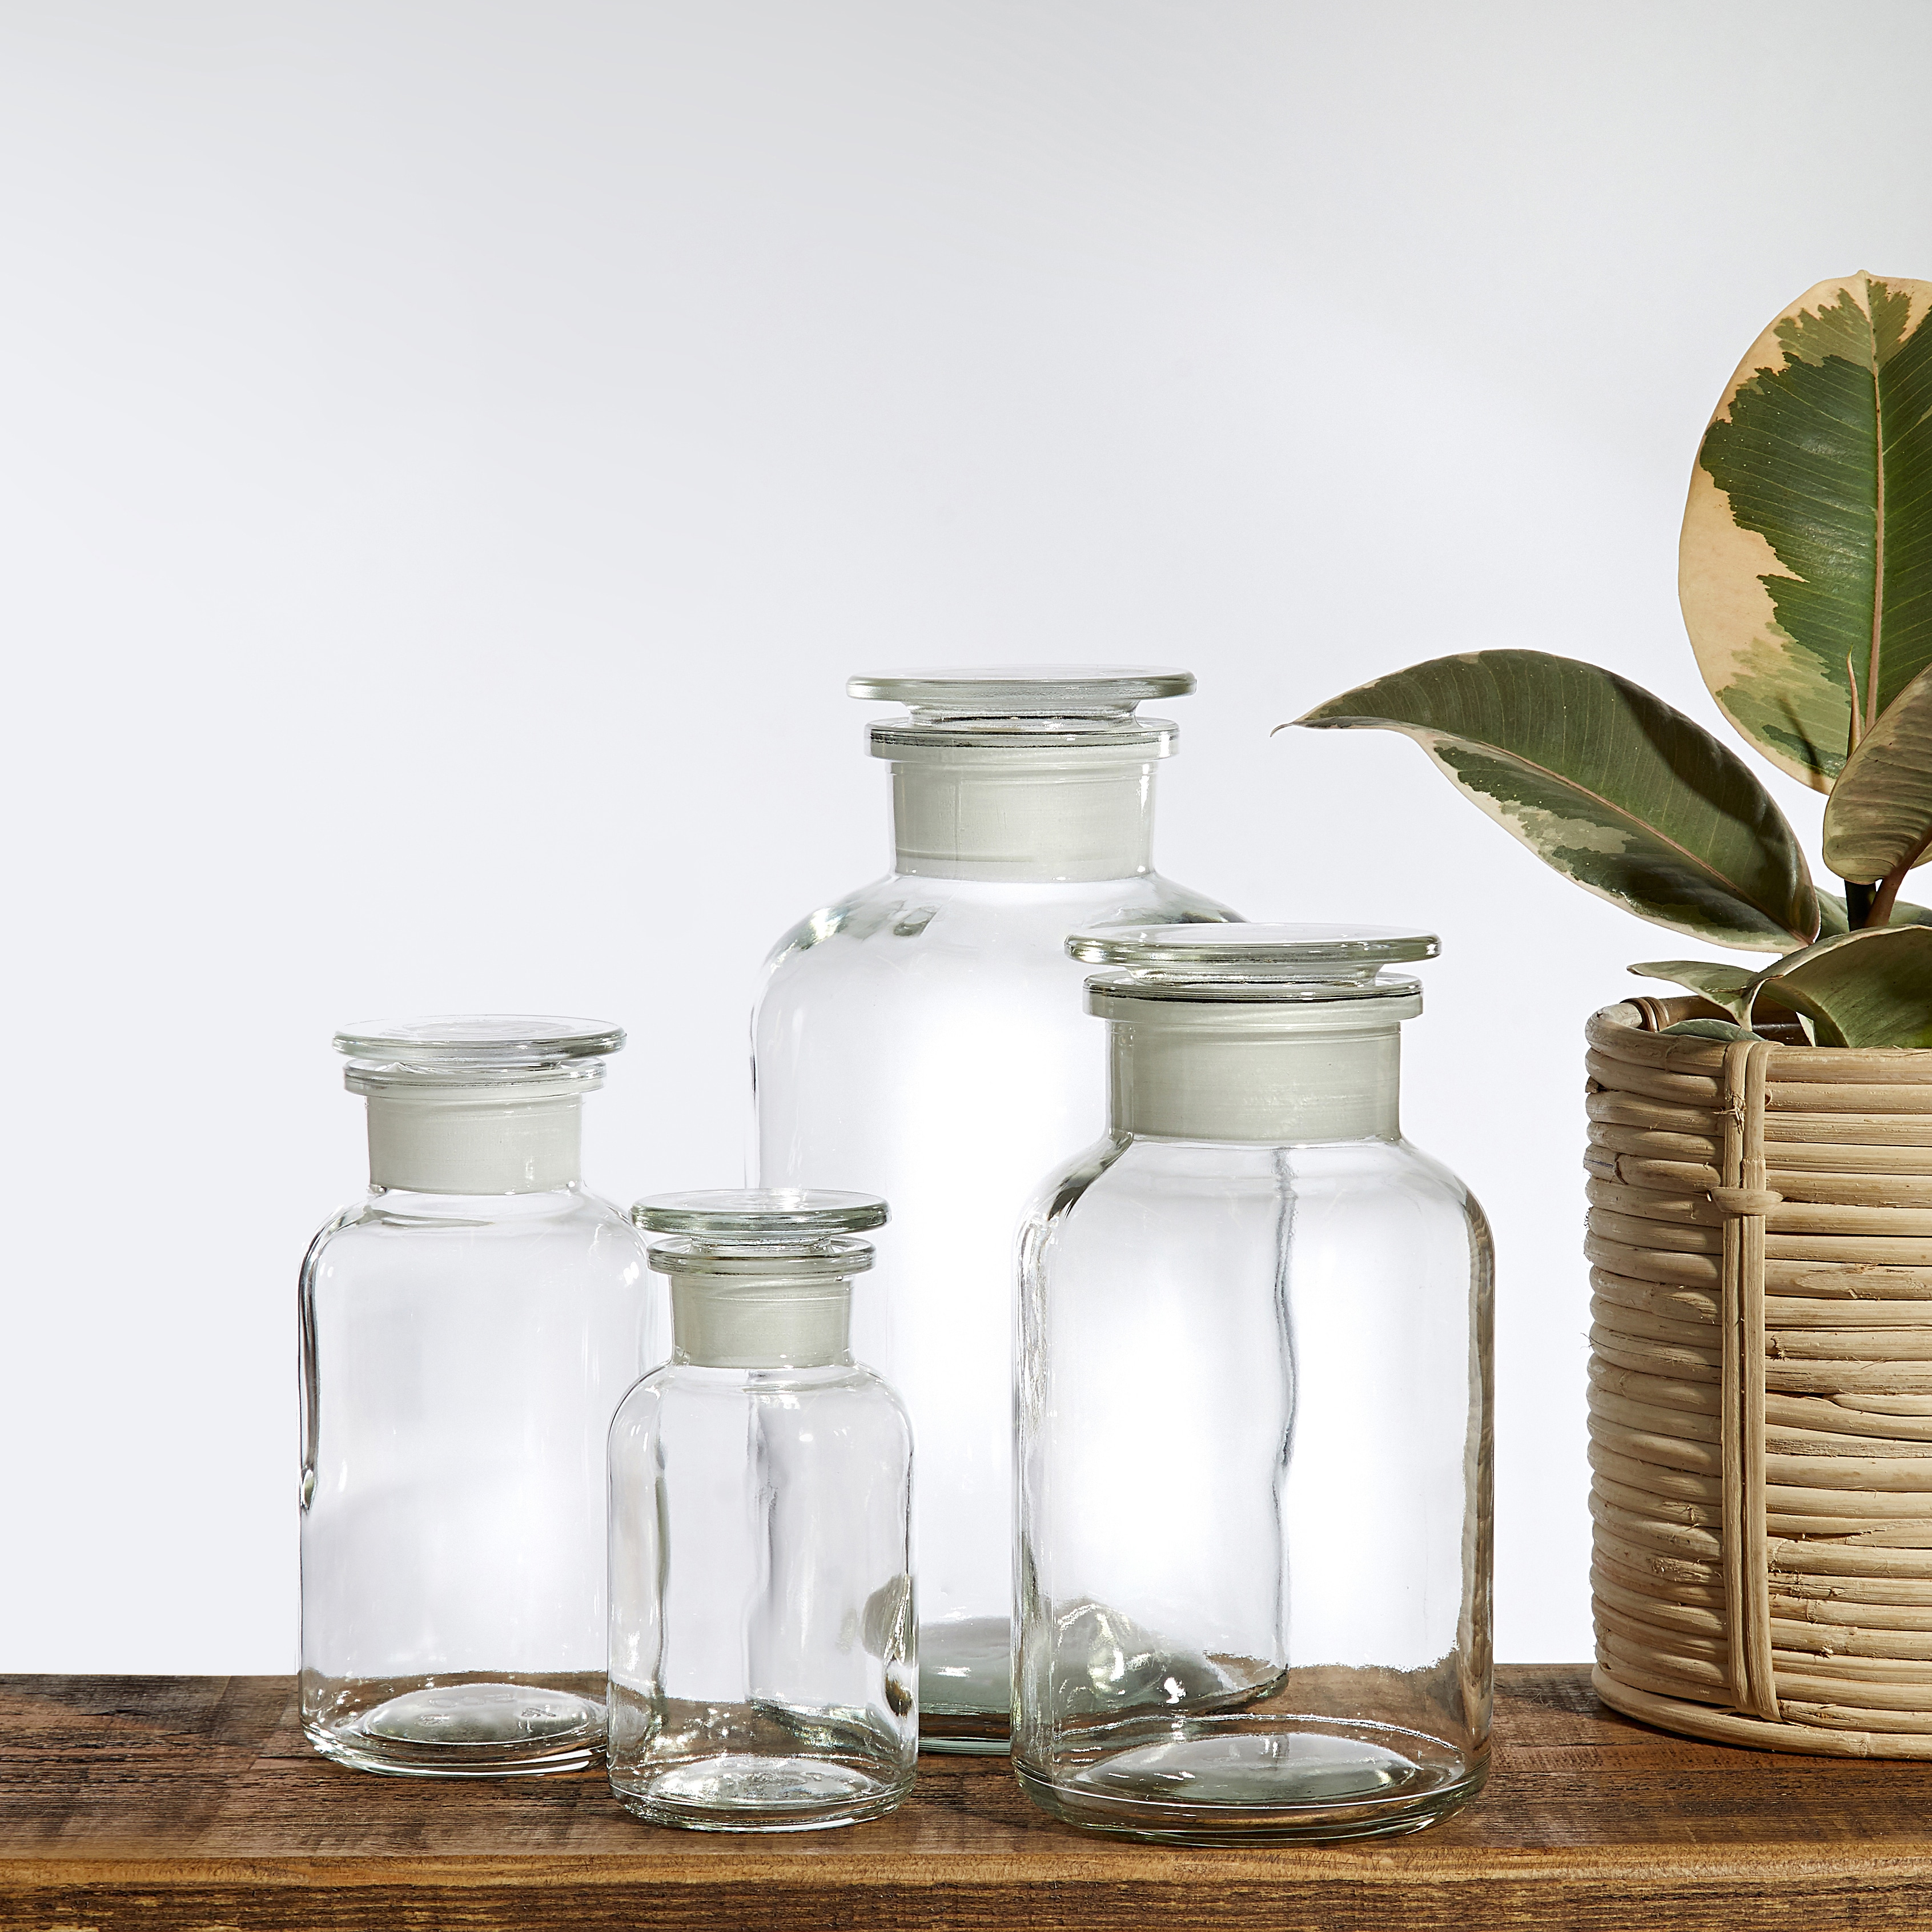 A selection of clear glass apothecary Jars